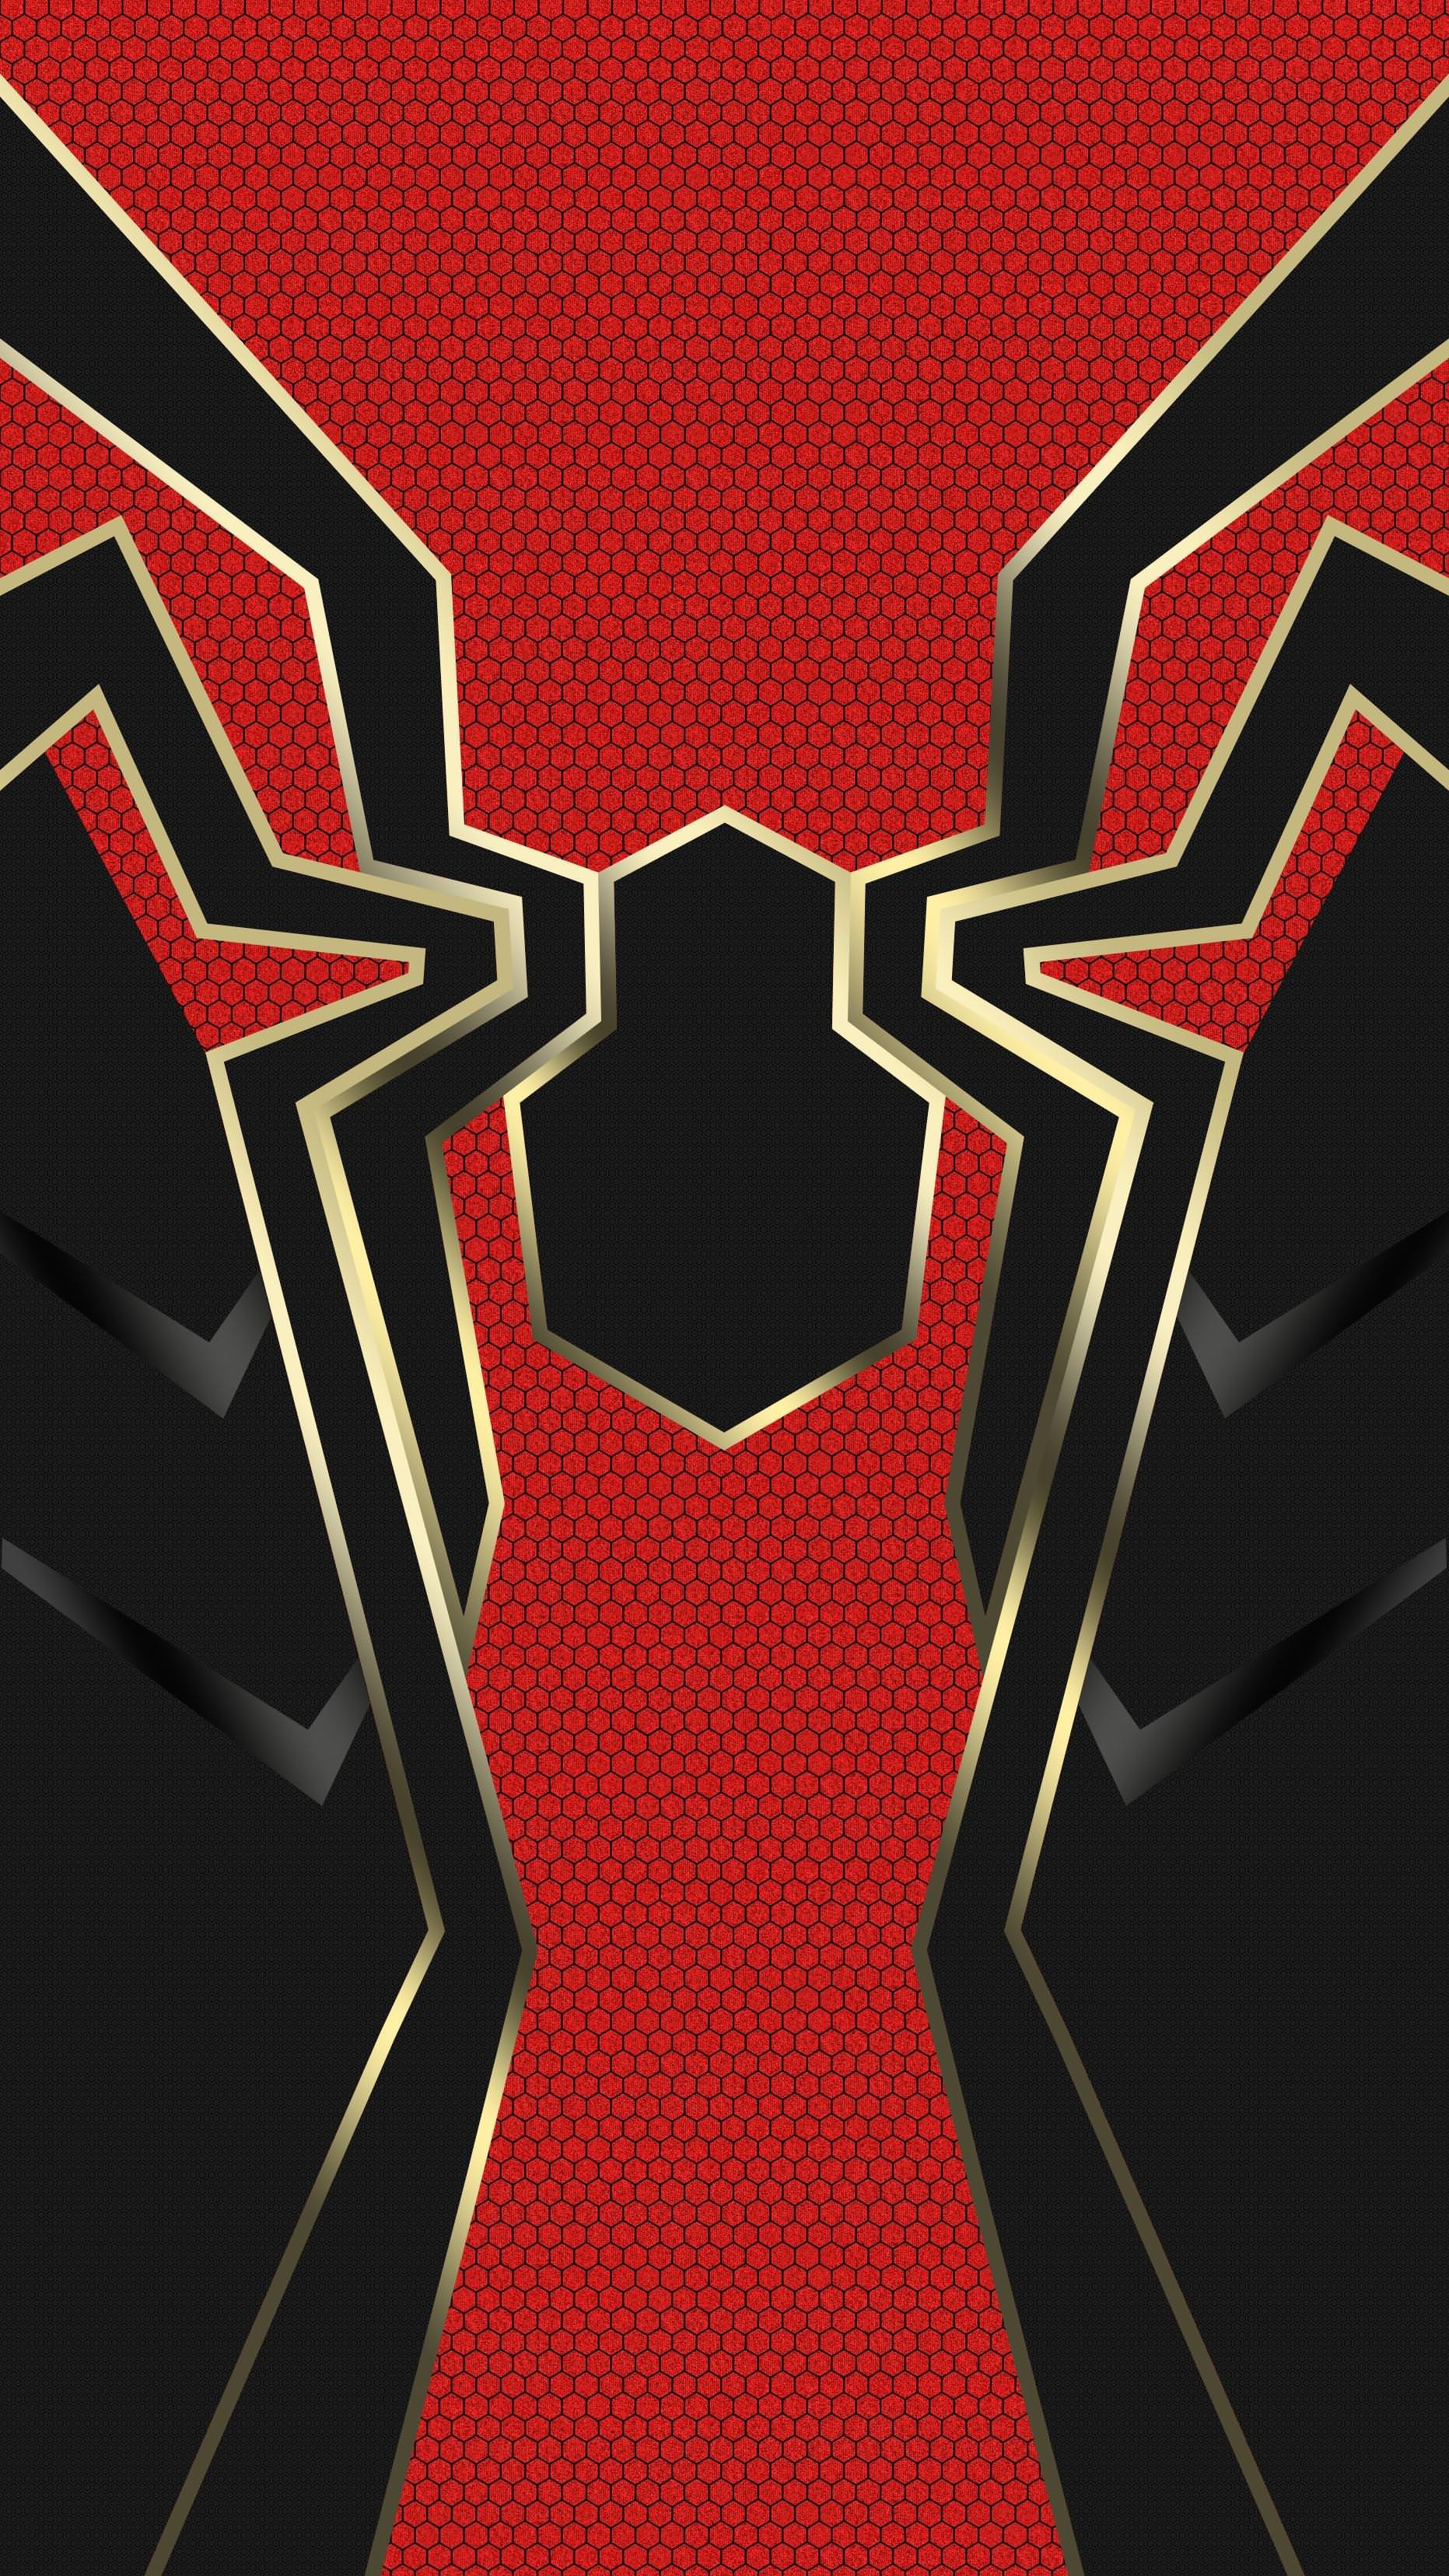 Iron Spider Hd Wallpaper 77 Images